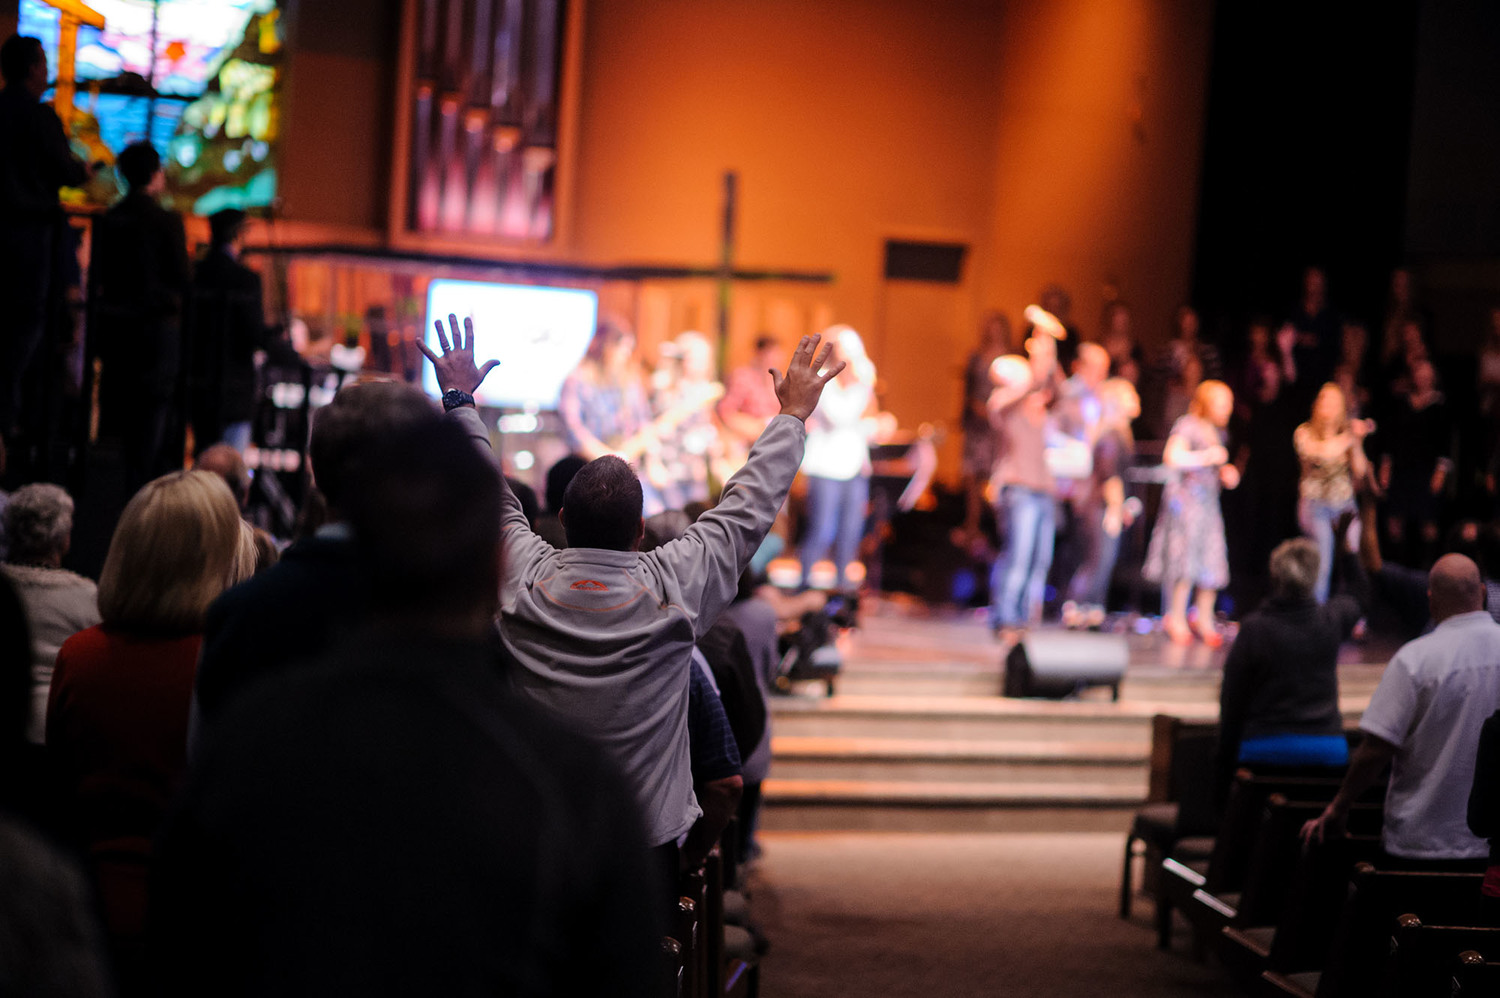 8. My full time job is at our church as the Executive Pastors assistant. I can't even begin to explain everything I do here, but I LOVE it!